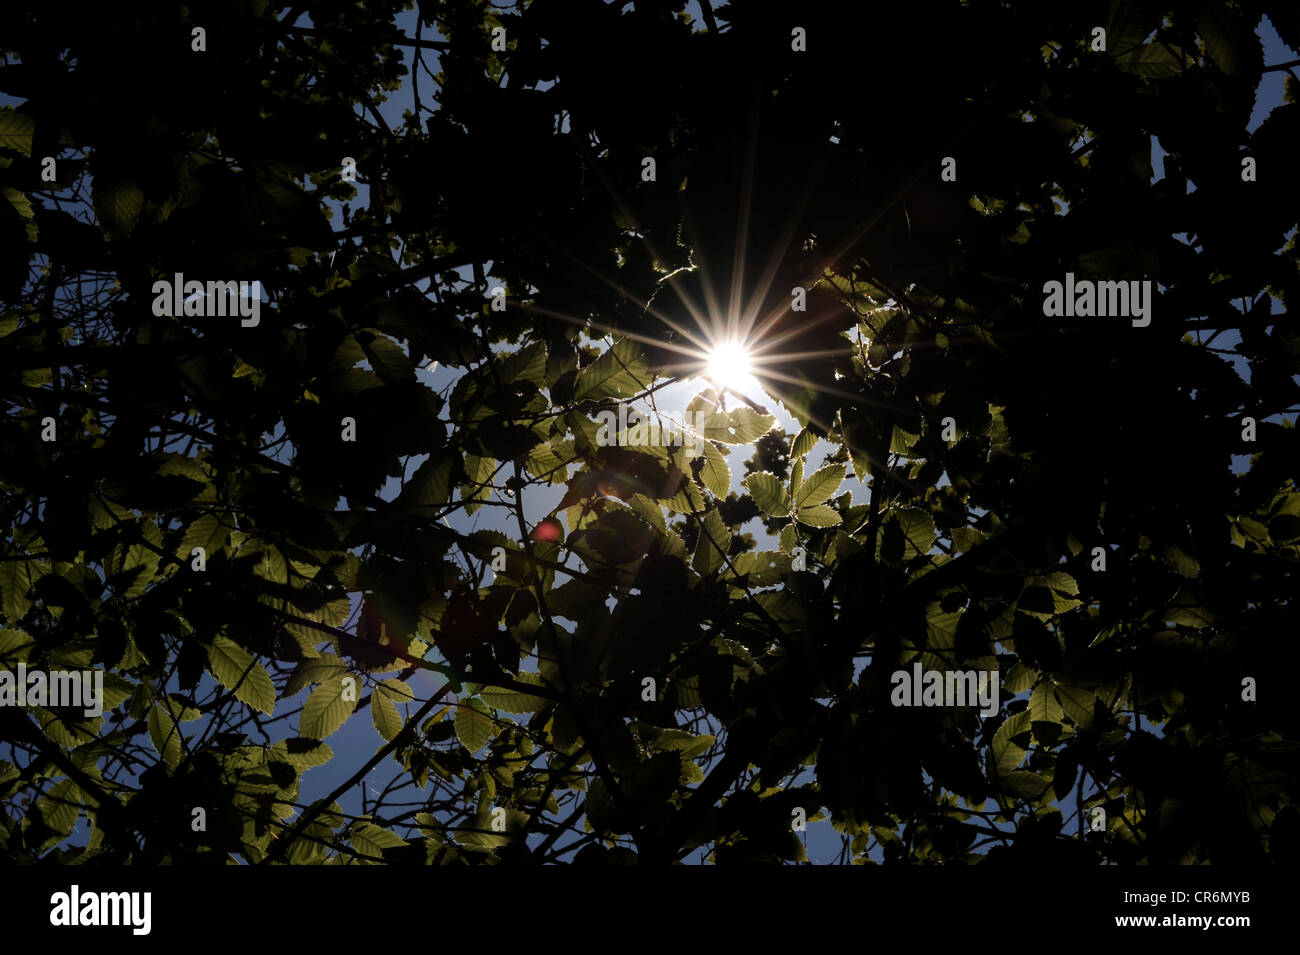 Sunshine breaks through a dark canopy of leaves - Stock Image